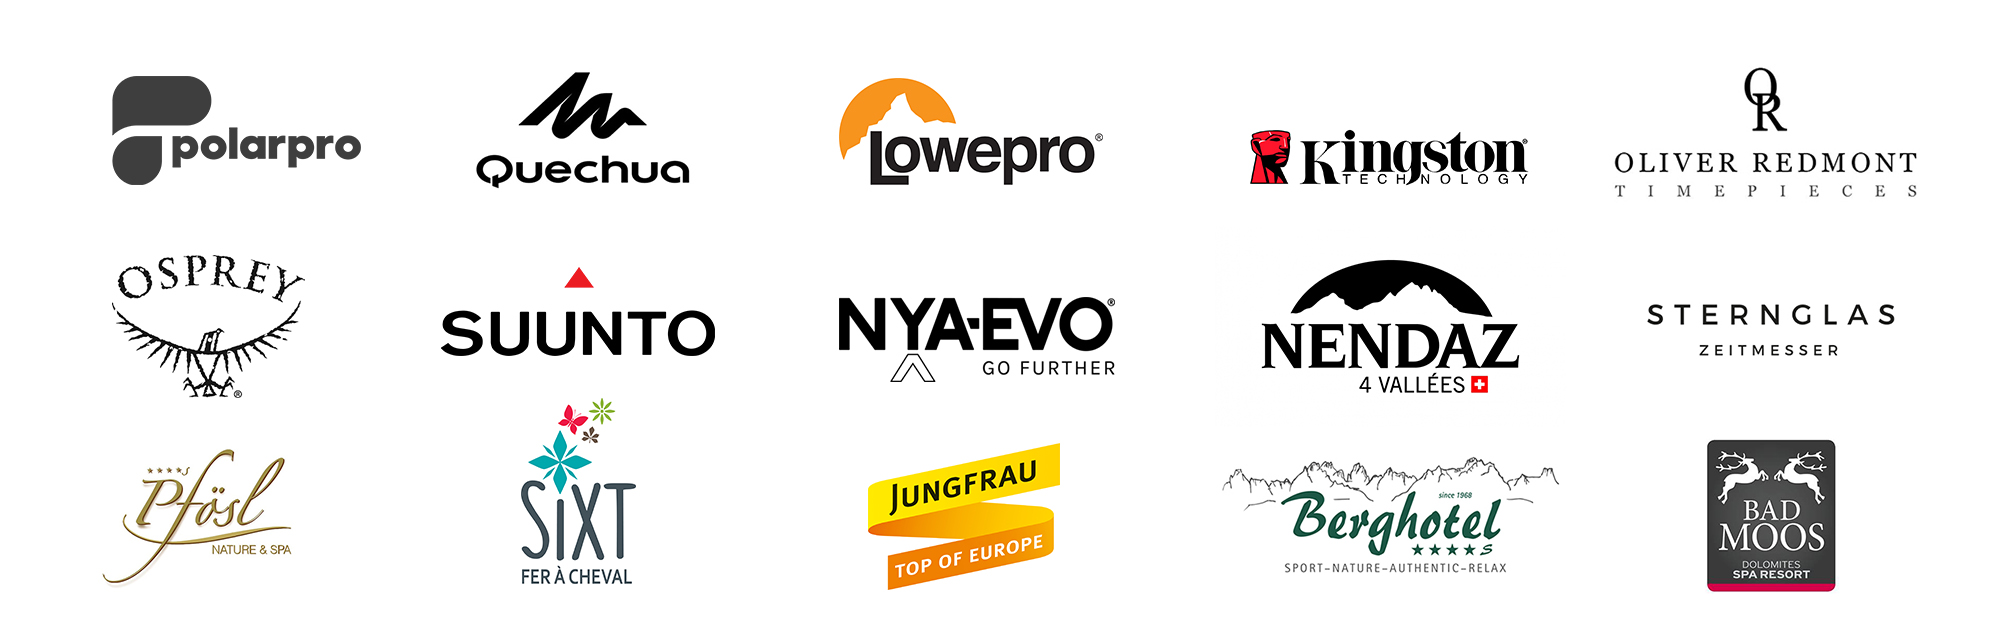 brands and partners.jpg